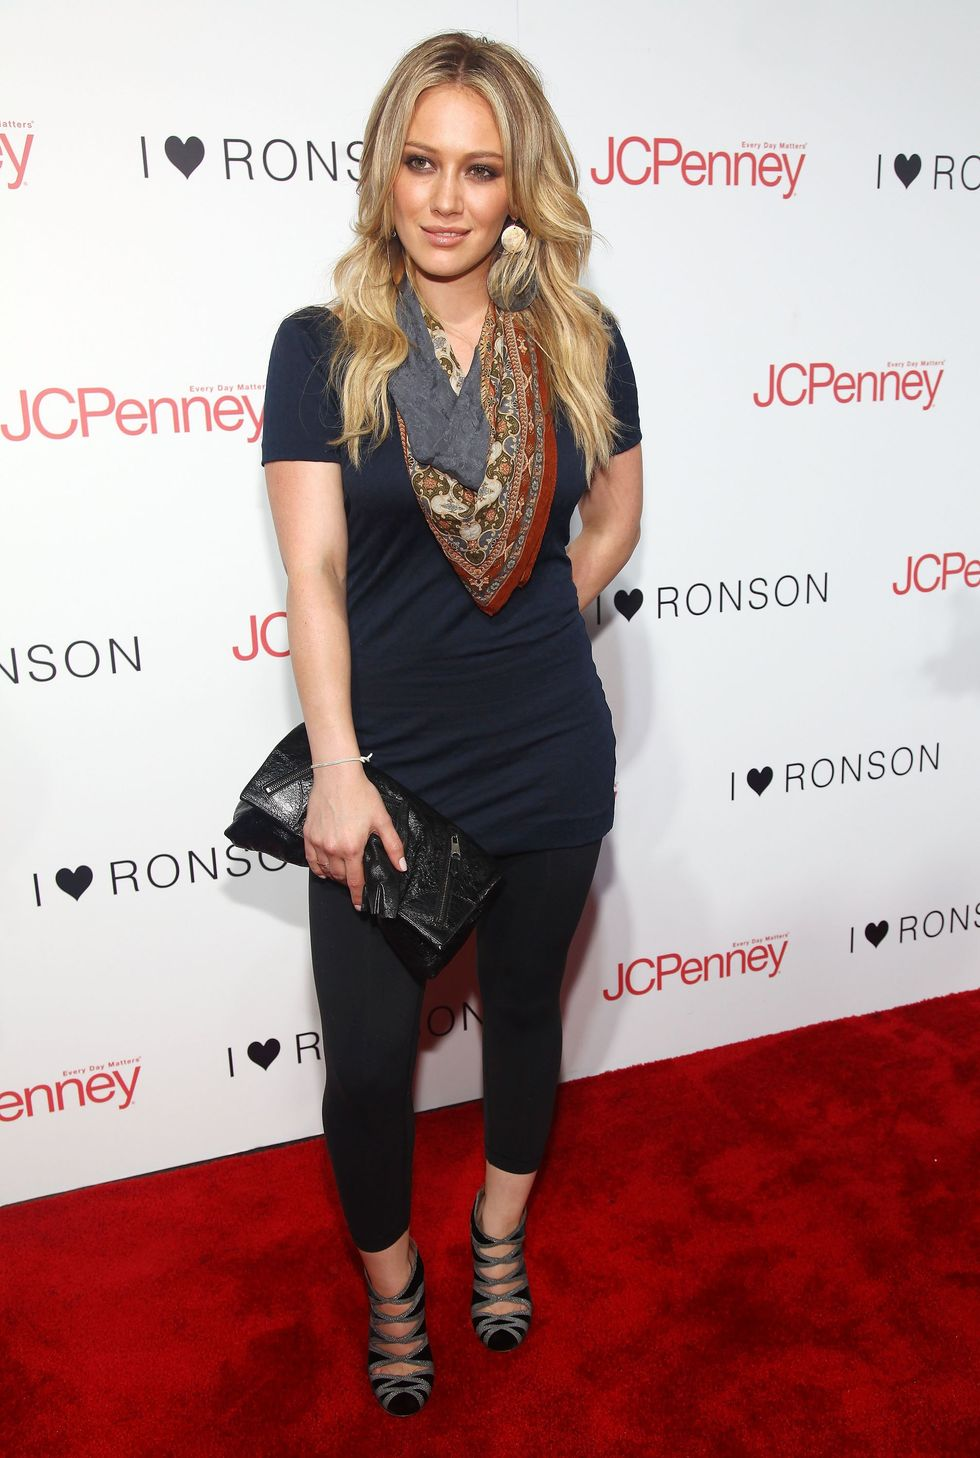 hilary-duff-i-heart-ronson-collection-launch-in-new-york-01